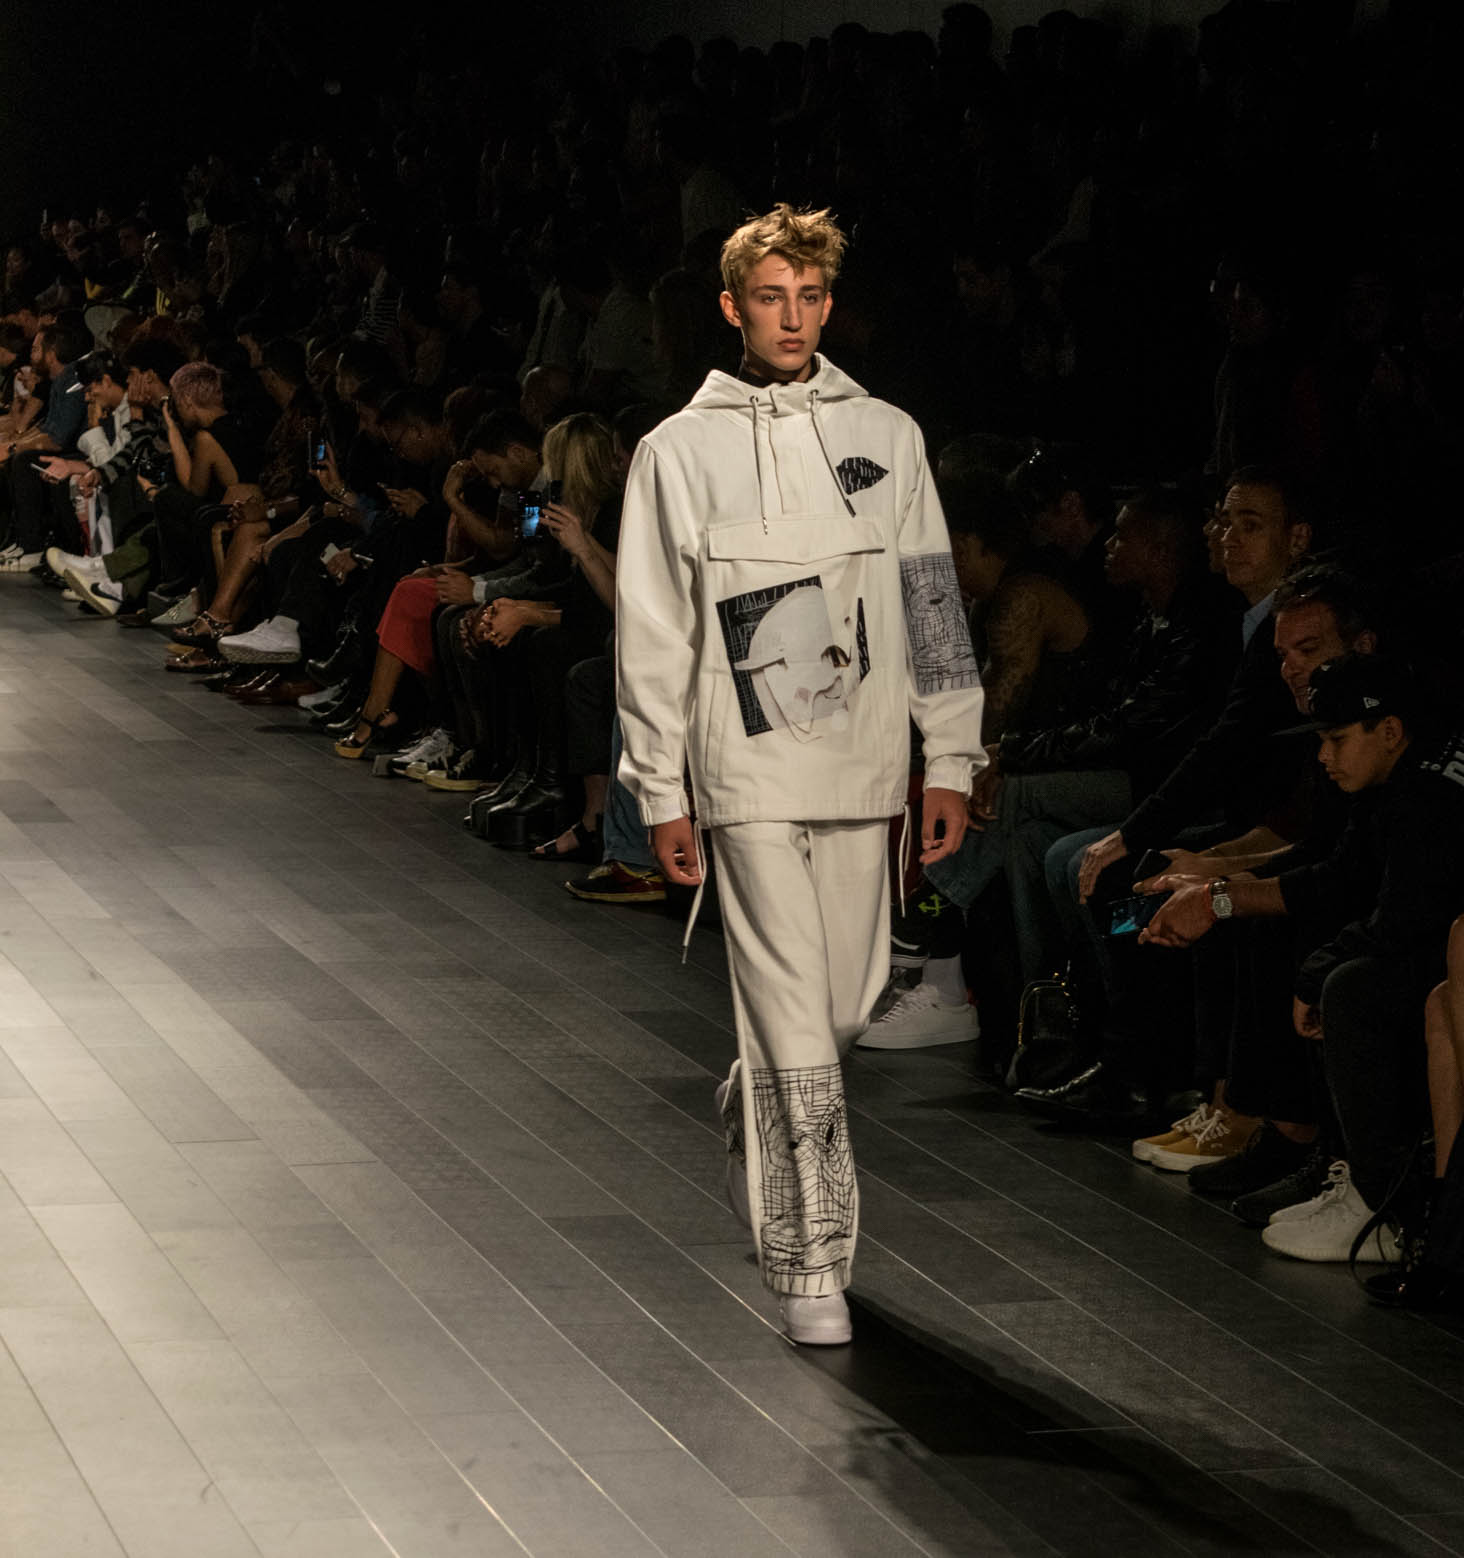 28 Rochambeau SS18 Runway Show - New York Fashion Week 2017 - FilterGrade Blog